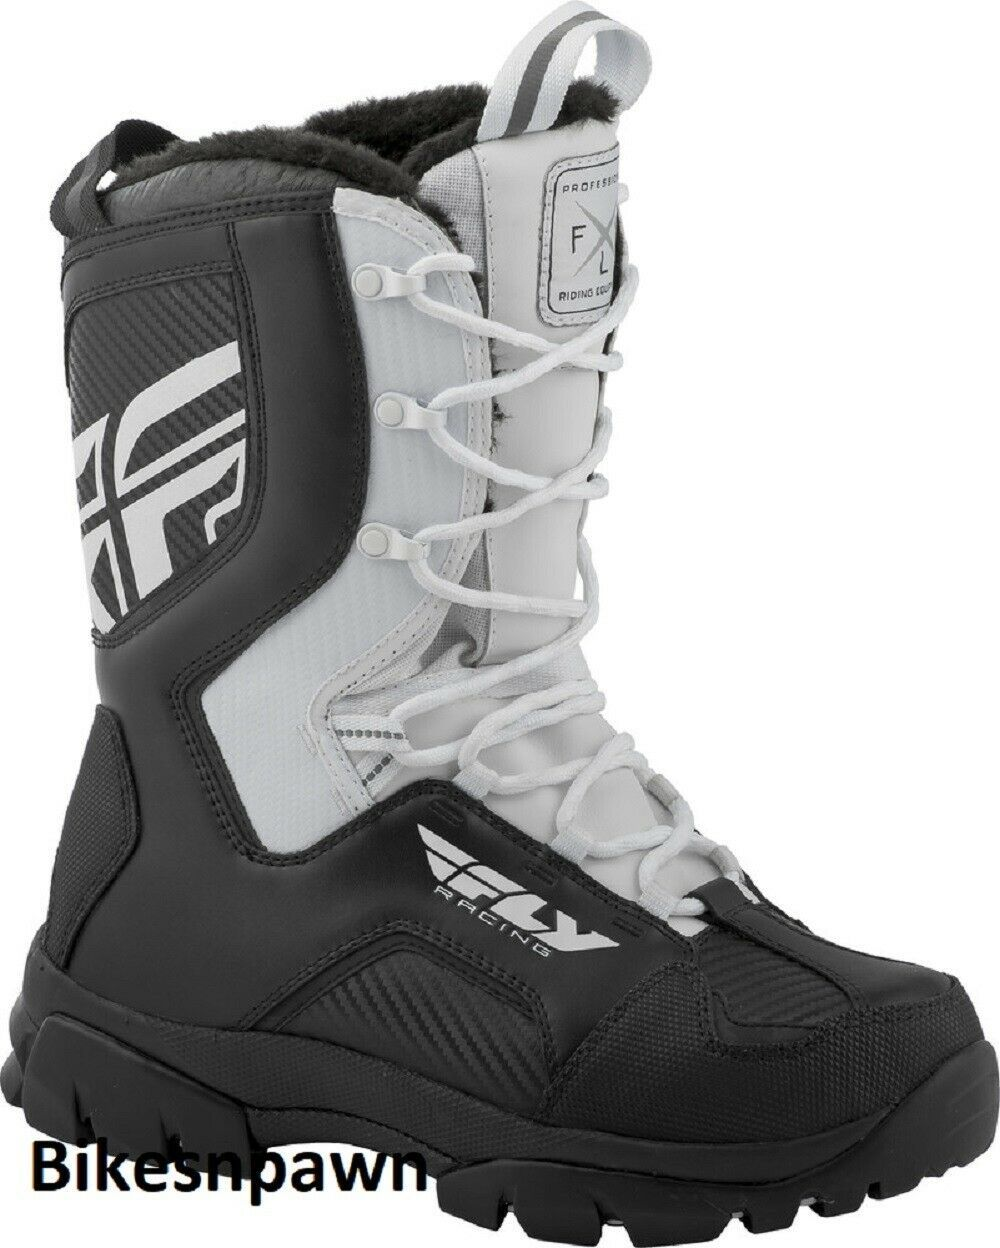 New Mens FLY Racing Marker Black/White Size 14 Snowmobile Winter Boots -40 F